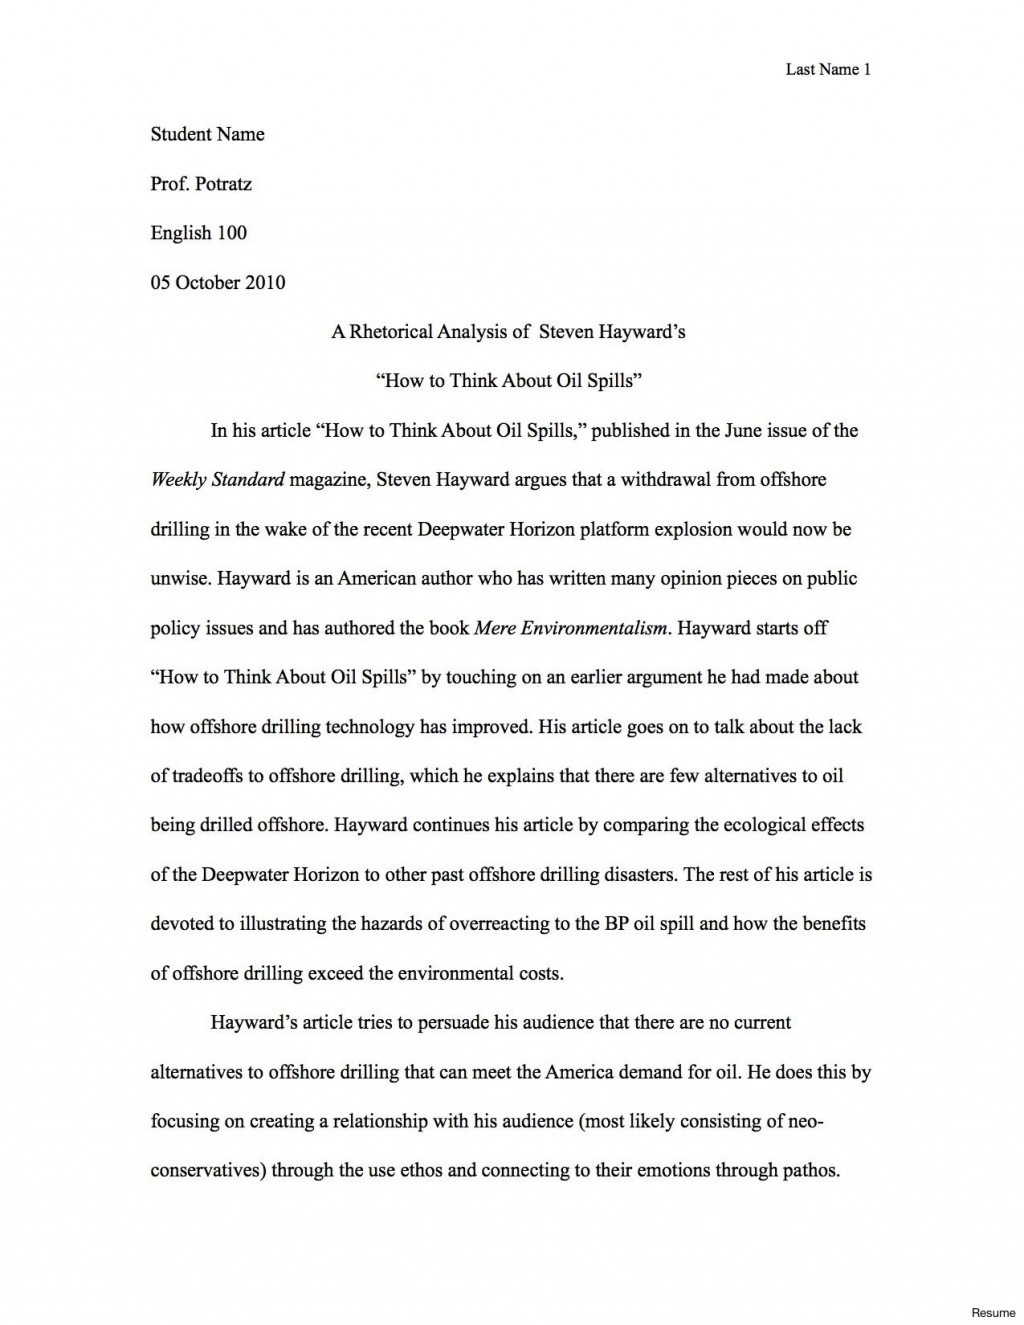 003 Essay Example Visual Argument Rhetorical Analysis Sample Jpg Examples Awesome Writing A Large